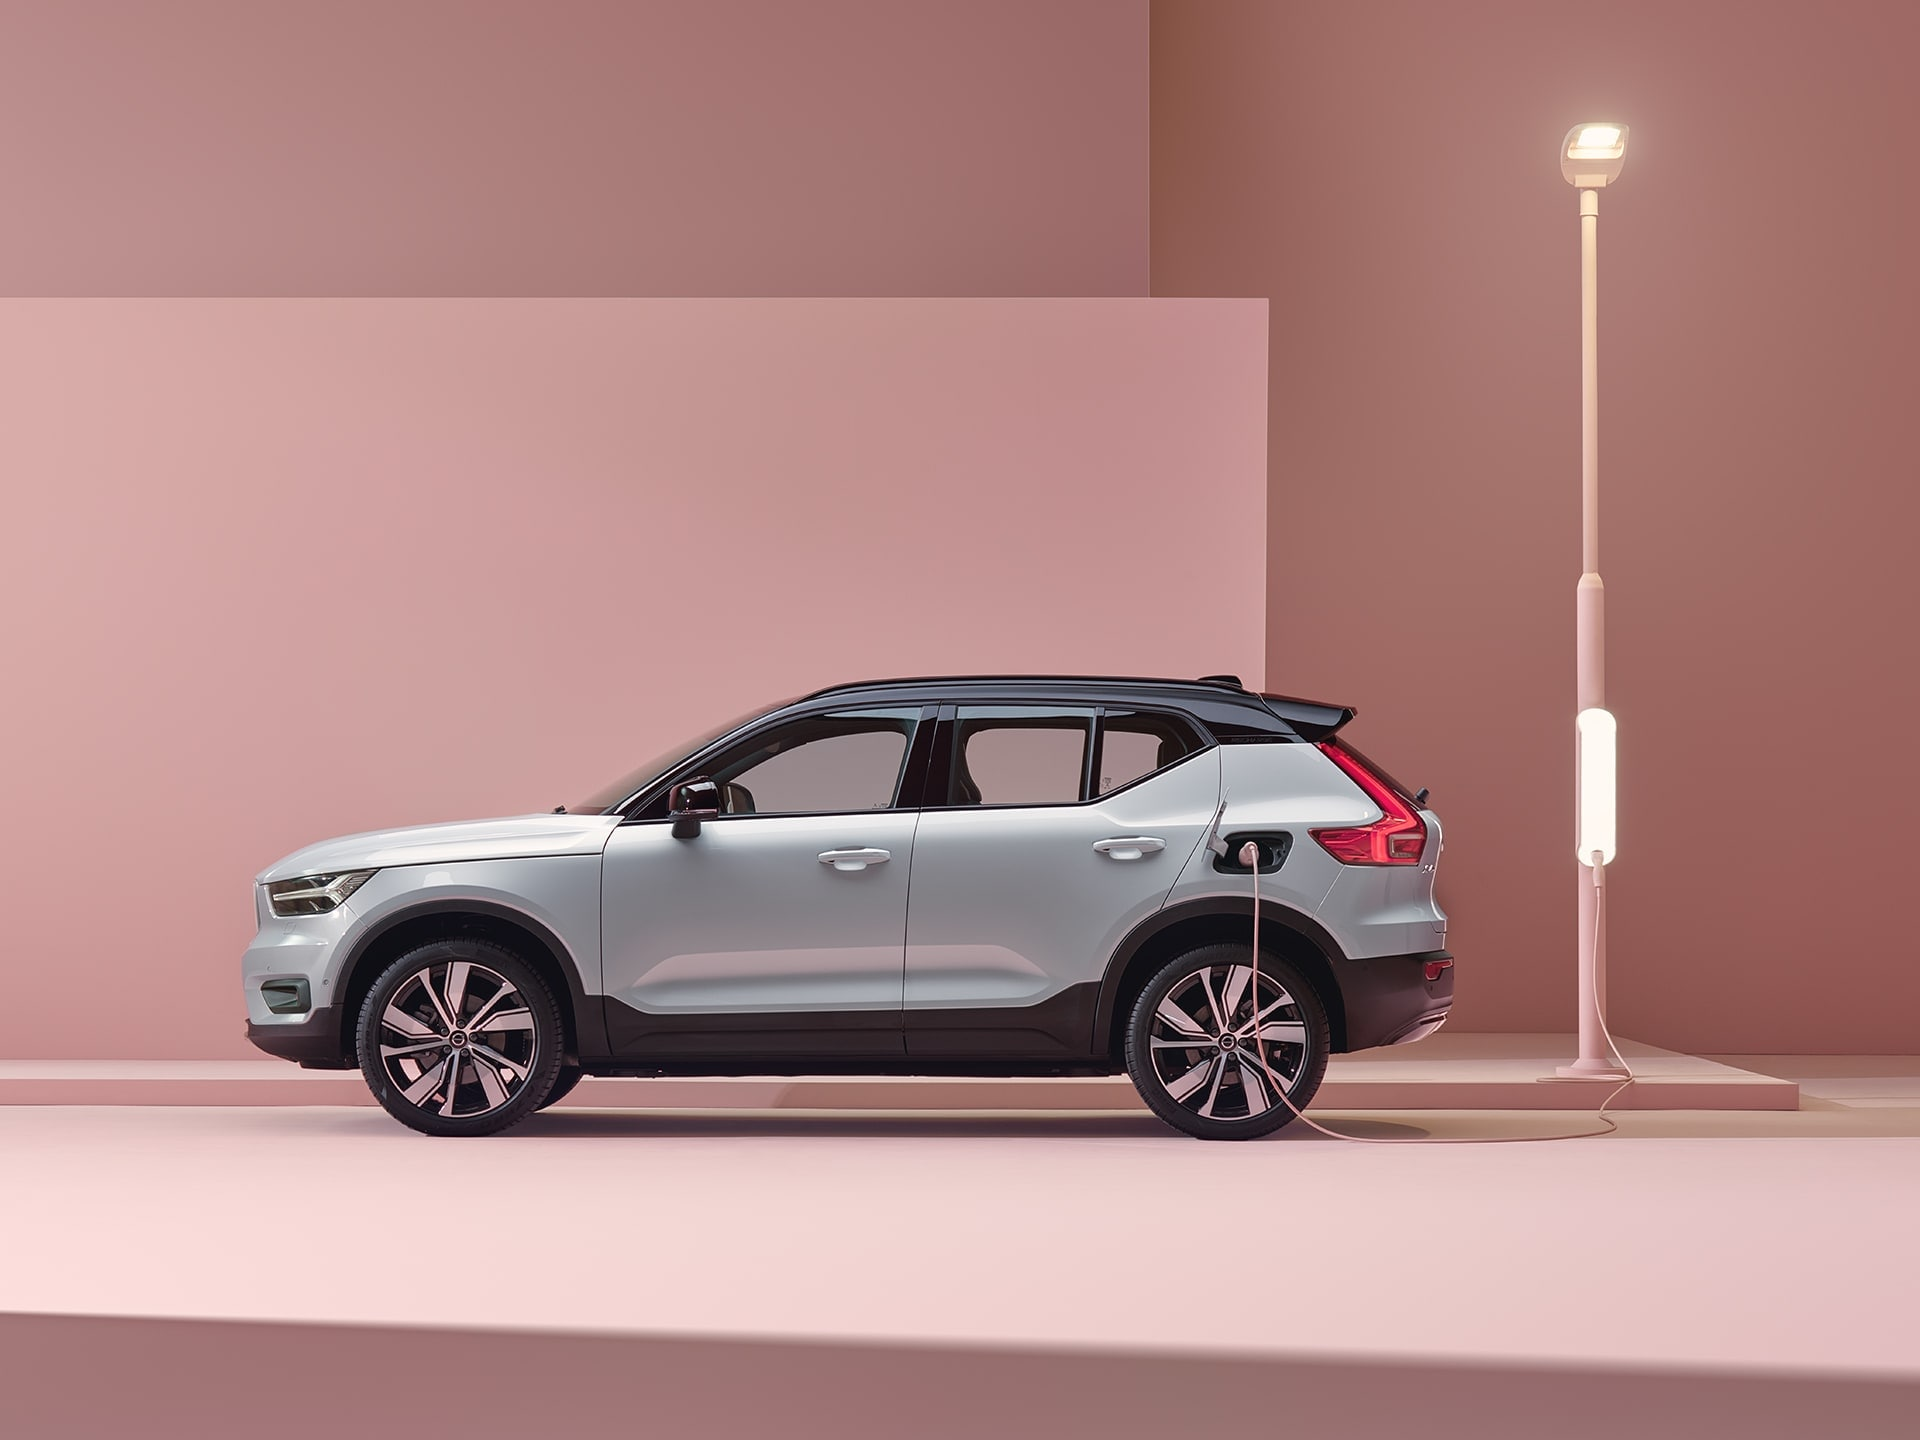 A glacier silver Volvo XC40 Recharge electric SUV charged in a pink city.